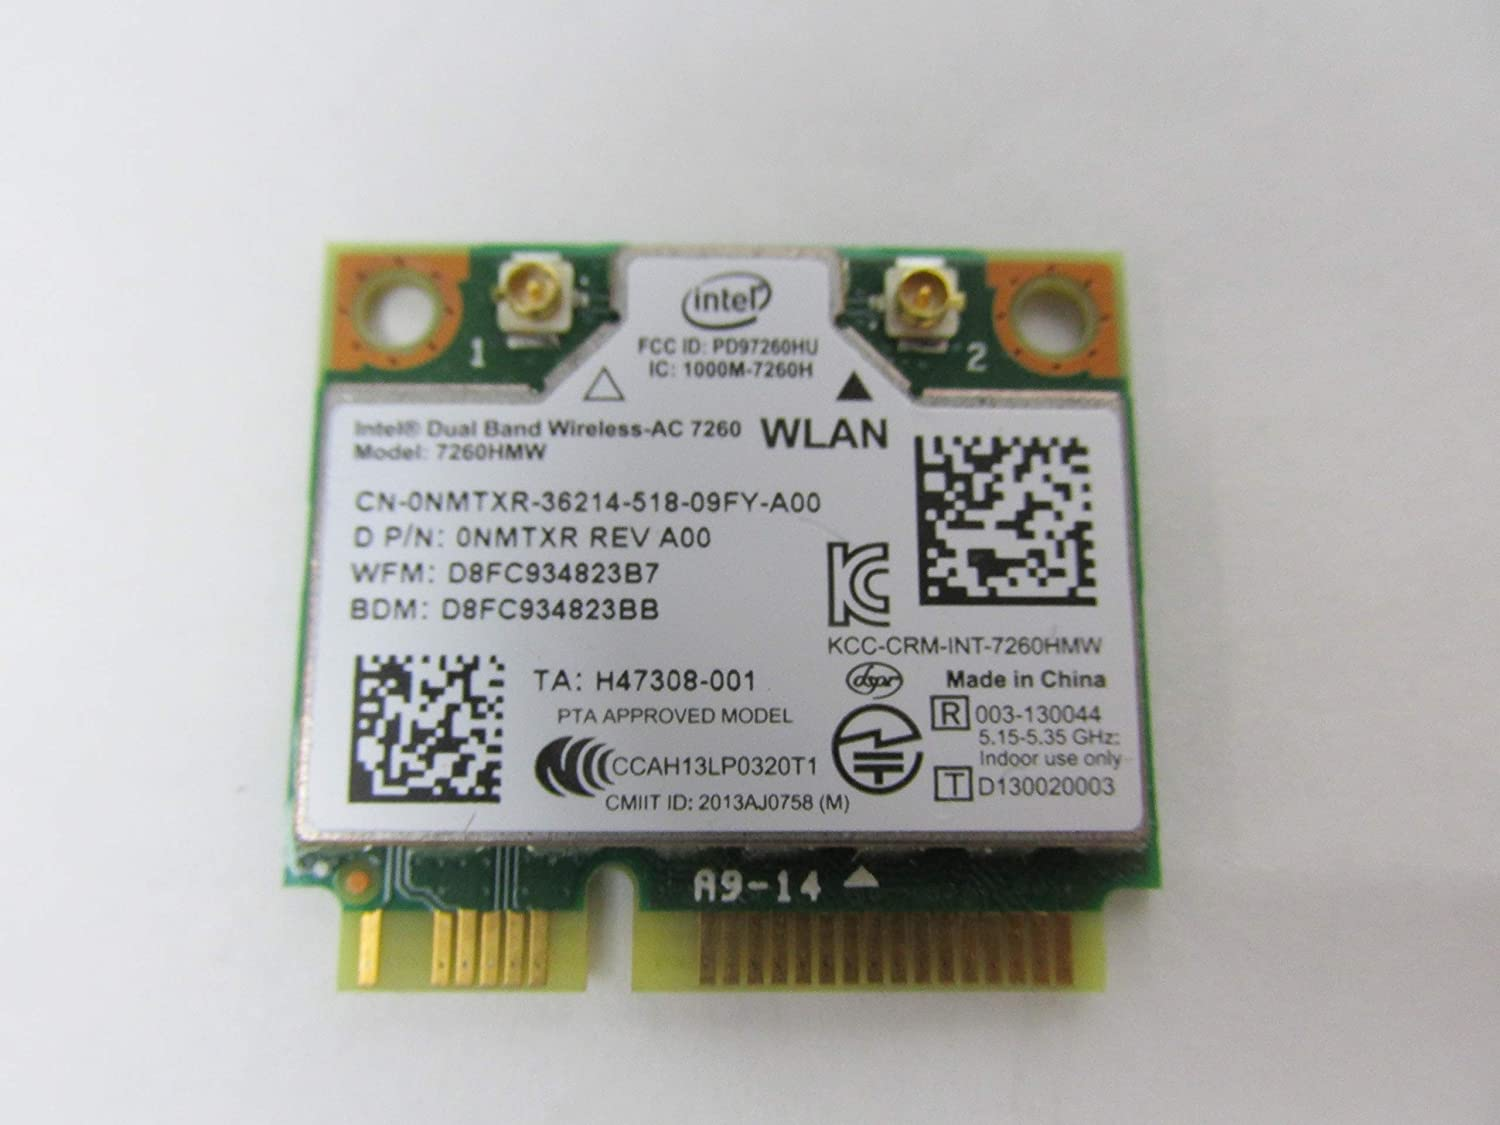 Intel Dual Band Wireless Ac 7260 Wlan Wifi 7260hmw Mini-pci Express Card Nmtxr